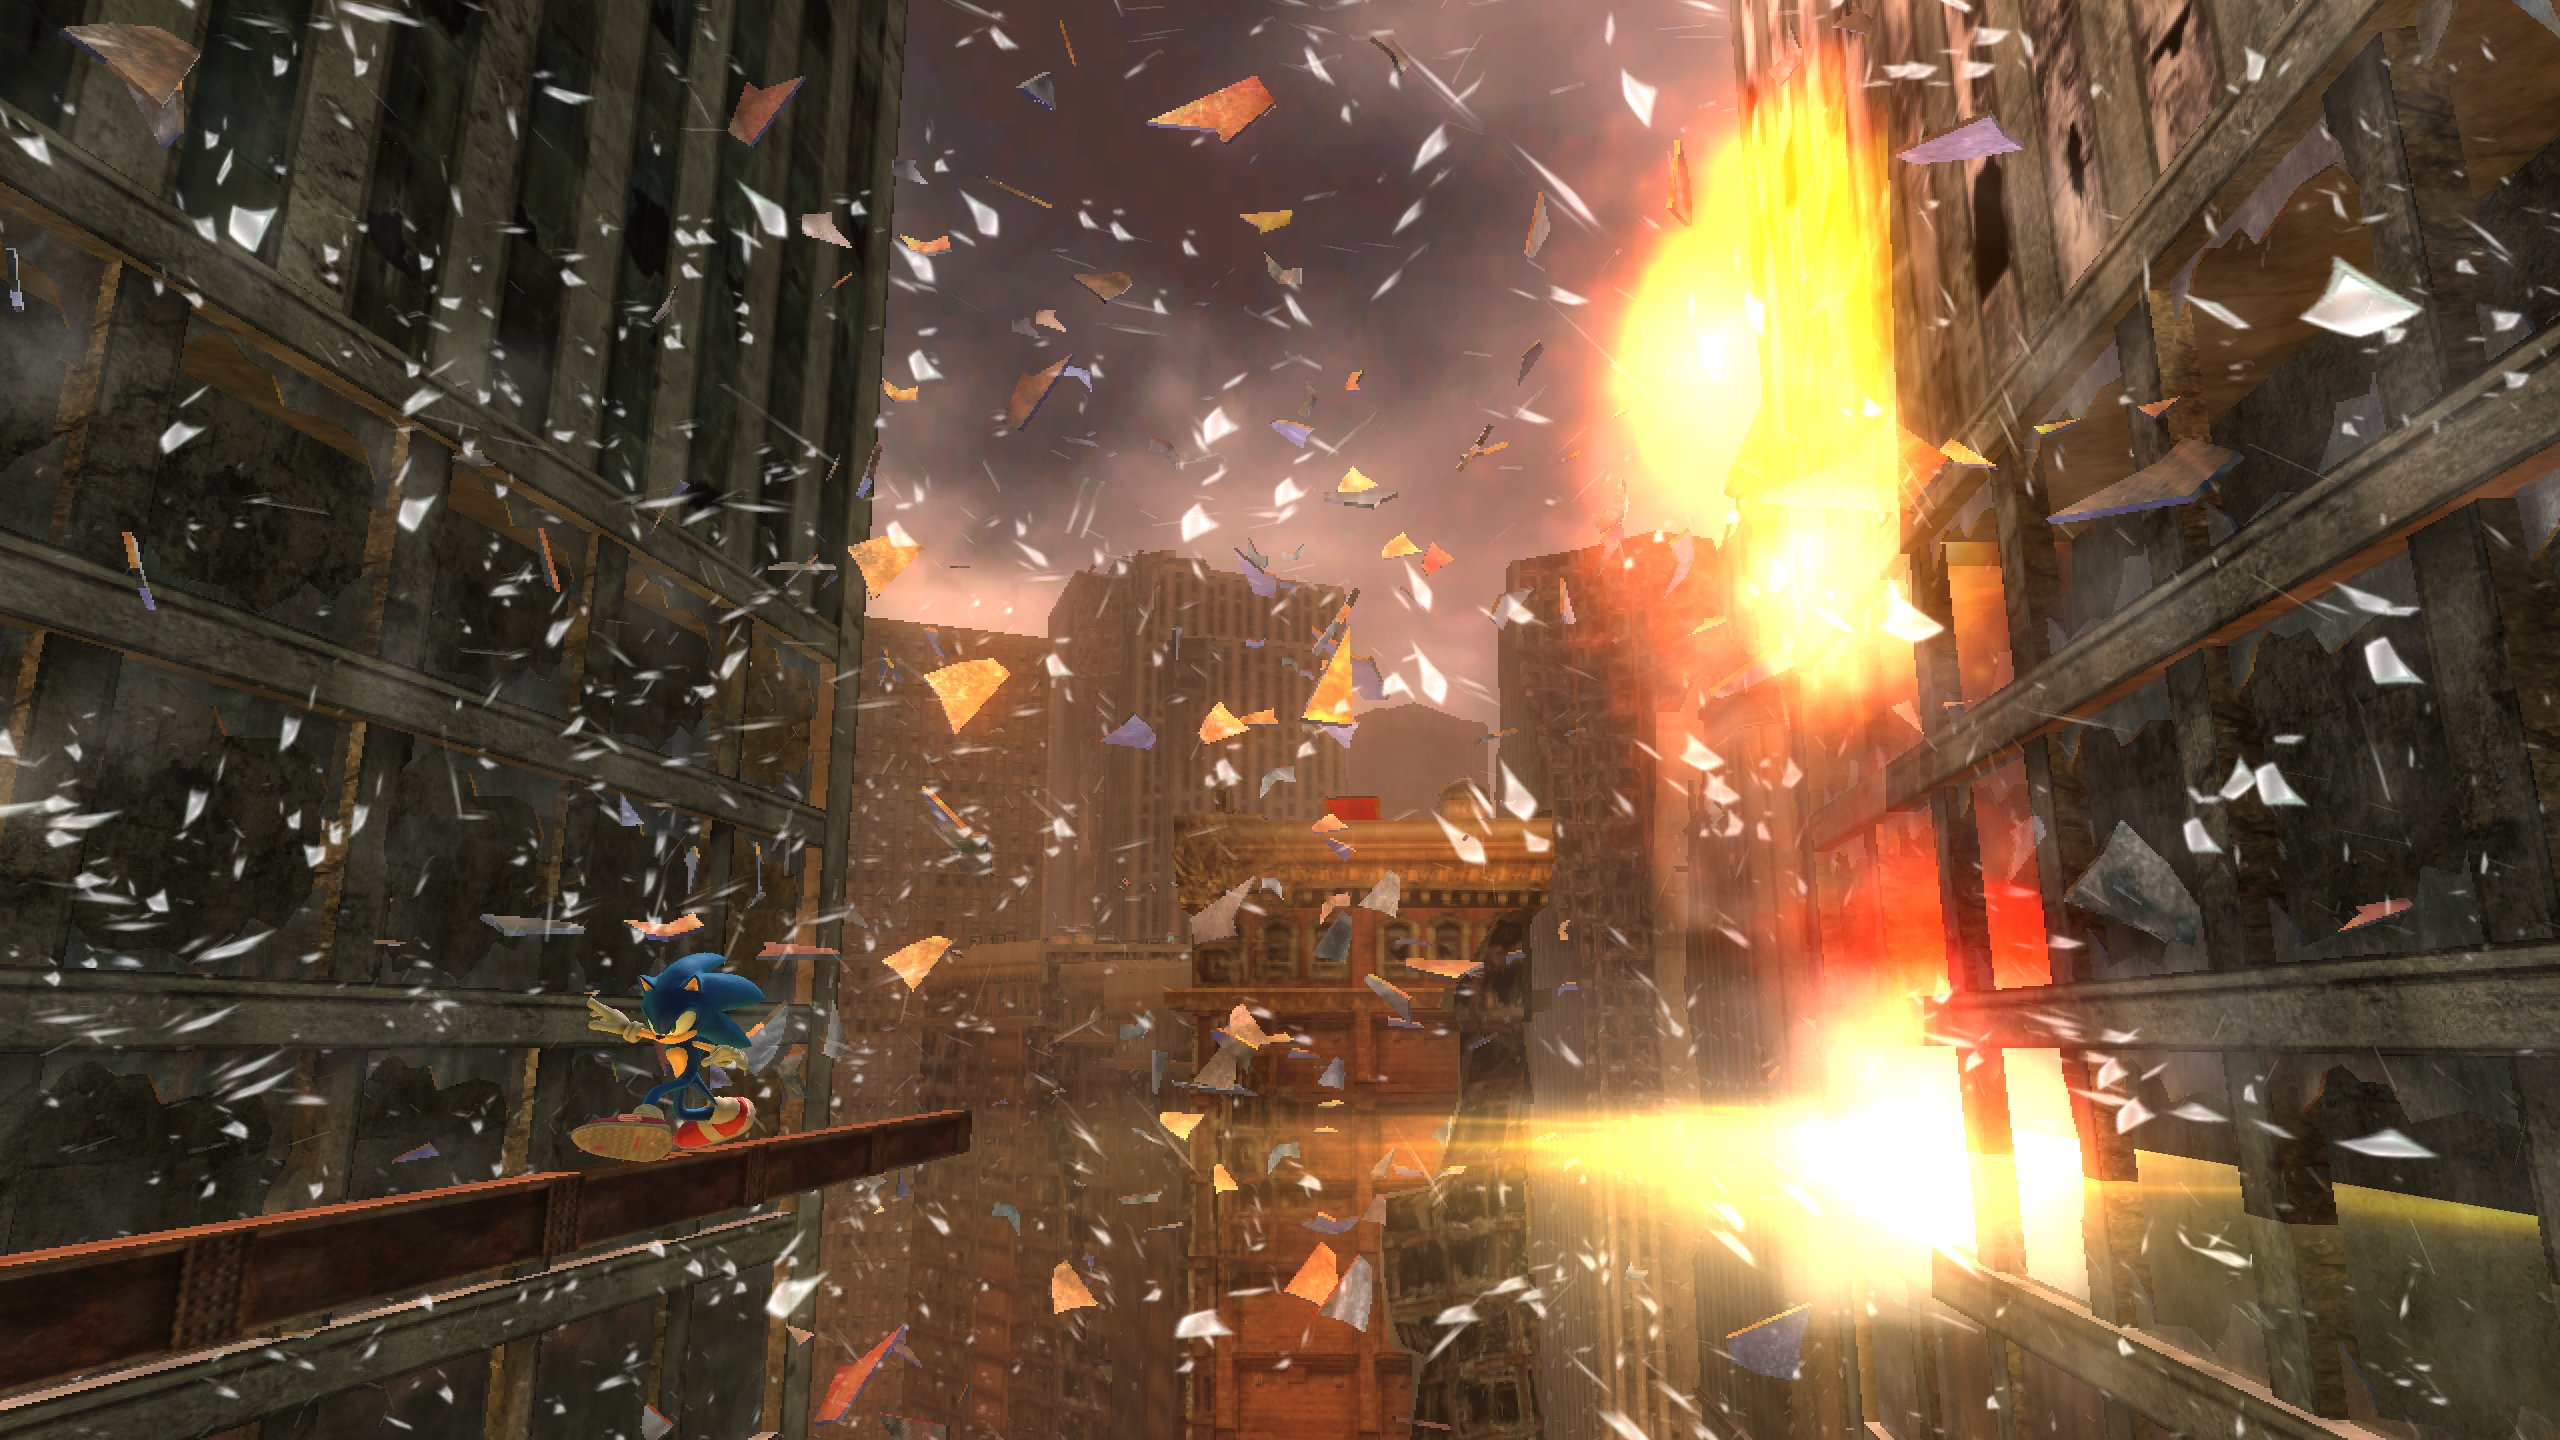 File:Sonic06screen48.jpg